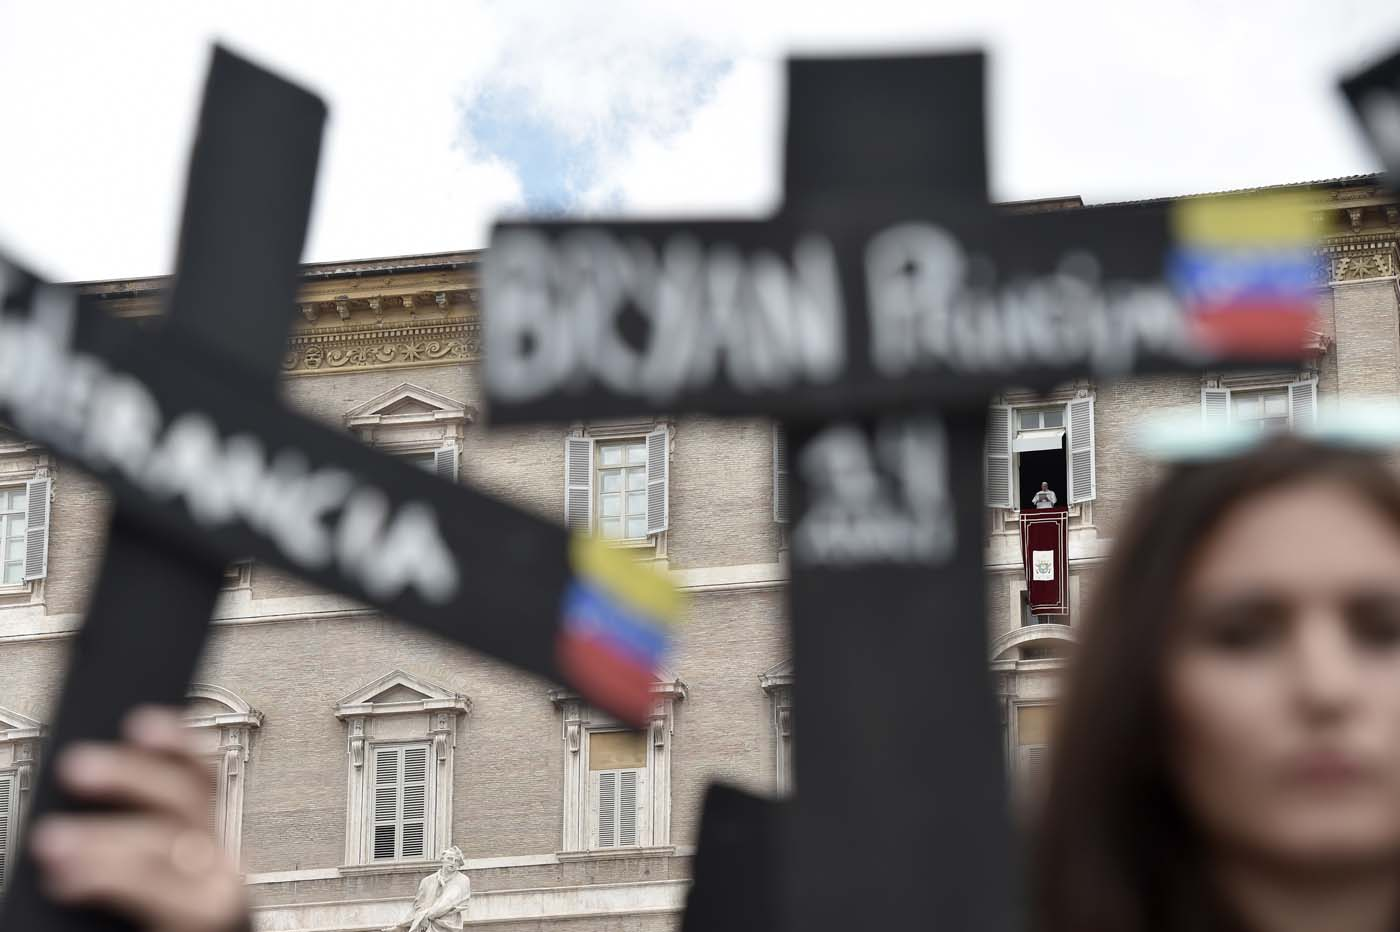 """Members of the Venezuelian community hold black crosses with names of victims of clashes during protests against Venezuela's President Nicolas Maduro, on May 7, 2017 at St Peter's square as Pope Francis stands at the window of the apostolic palace during the Regina Coeli prayer in Vatican. Pope Francis last week made a heartfelt appeal for """"negotiated solutions"""" to end the violence in crisis-torn Venezuela for the sake of an """"exhausted population"""". The death toll since April -- when the protests intensified after Maduro's administration and the courts stepped up efforts to undermine the opposition -- is at least 36, according to prosecutors, with hundreds more injured. / AFP PHOTO / TIZIANA FABI"""